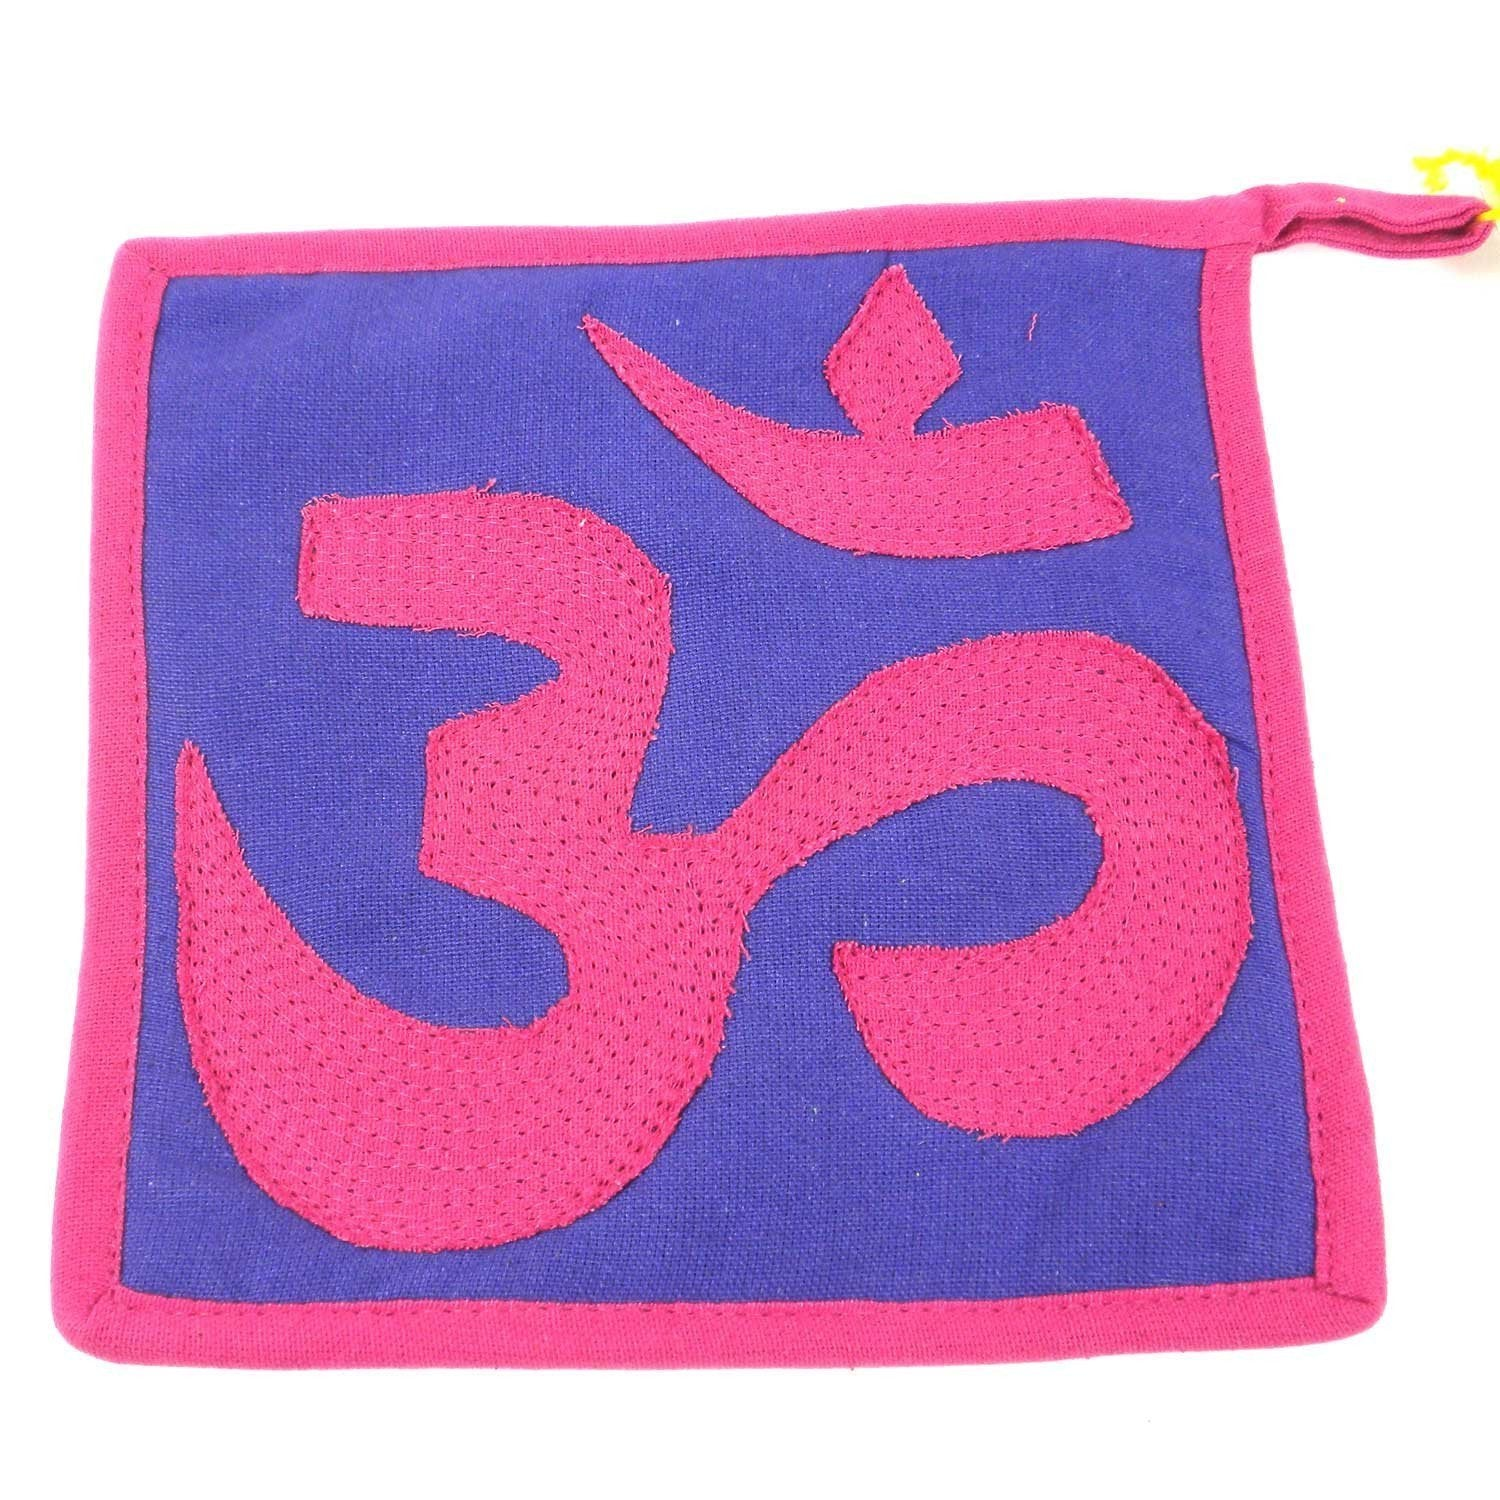 Om Hot pad - Pink and Purple